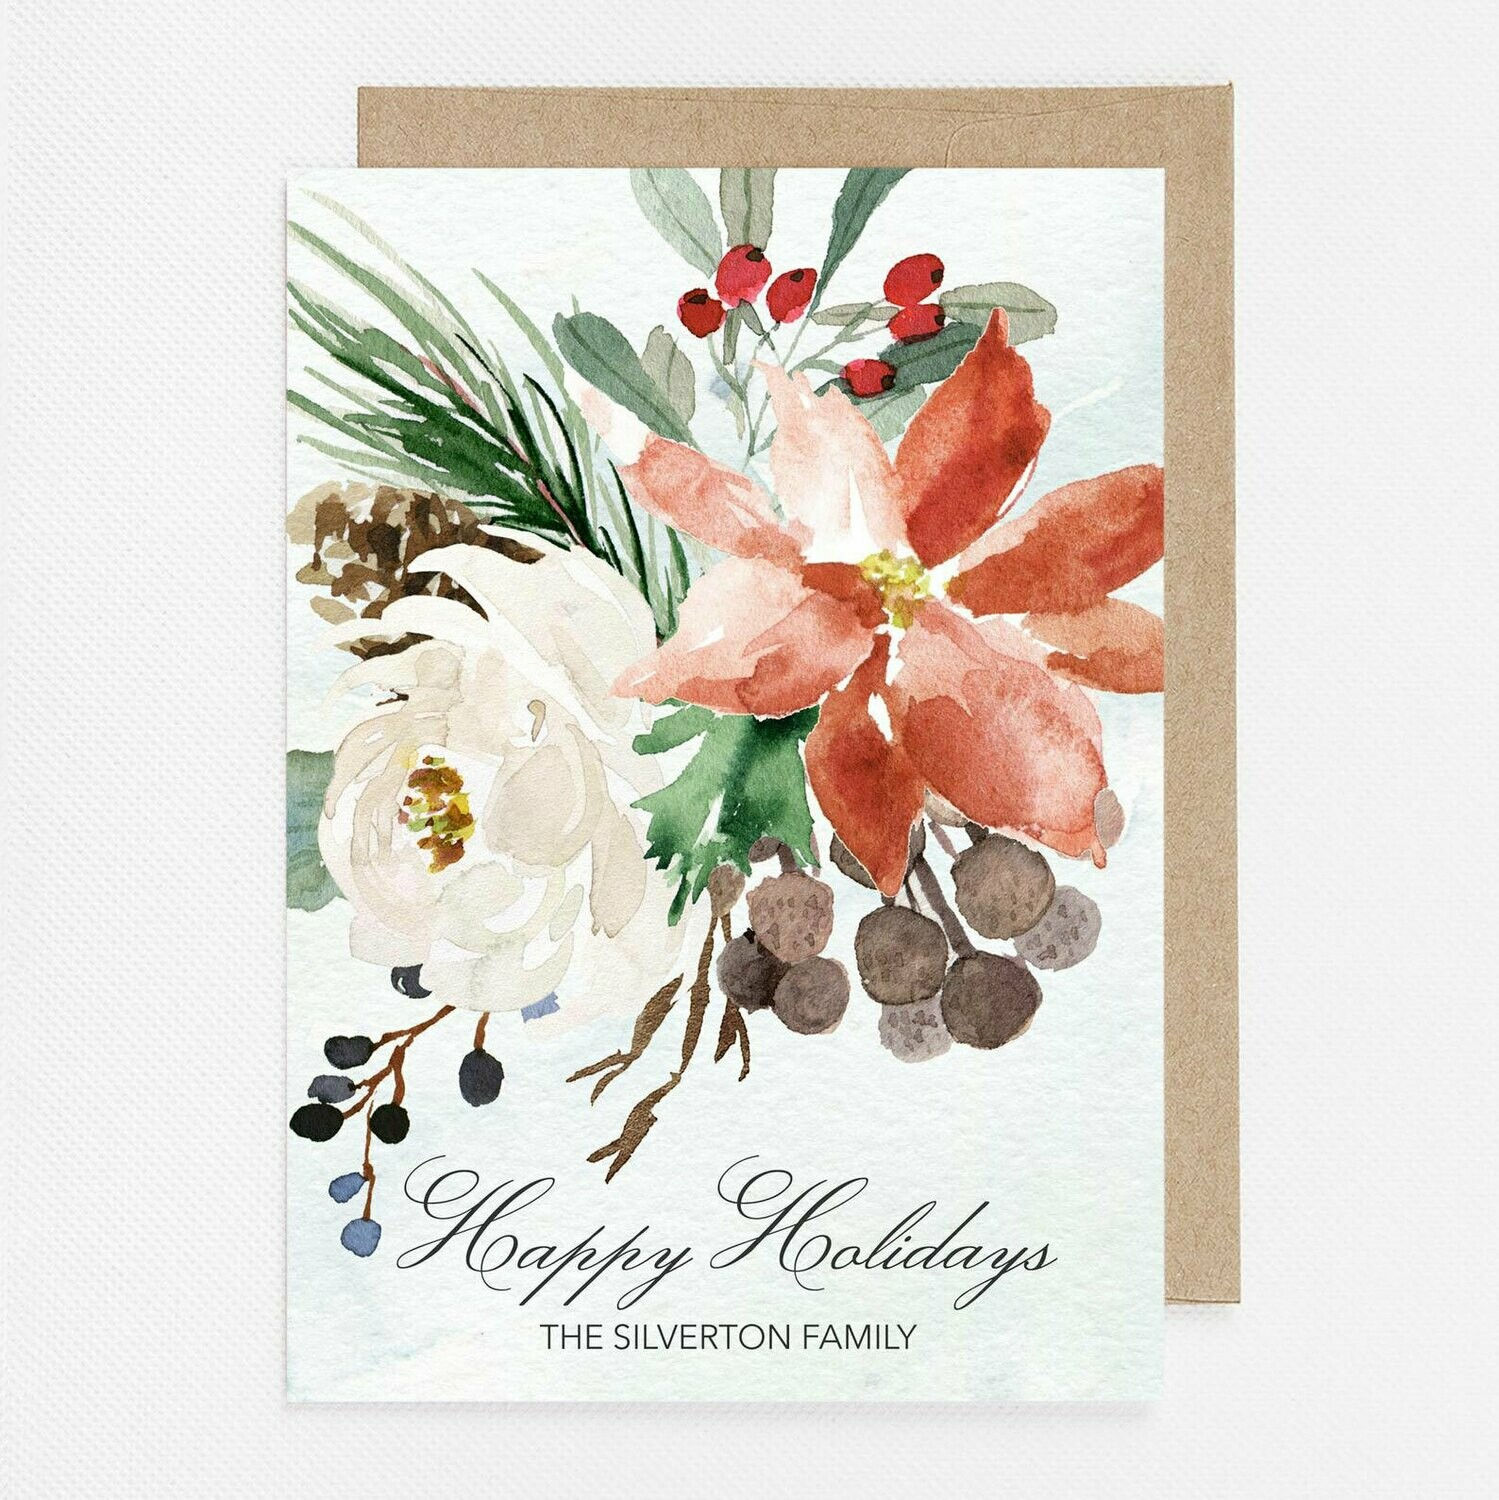 Winter Watercolor Christmas Card with inside text